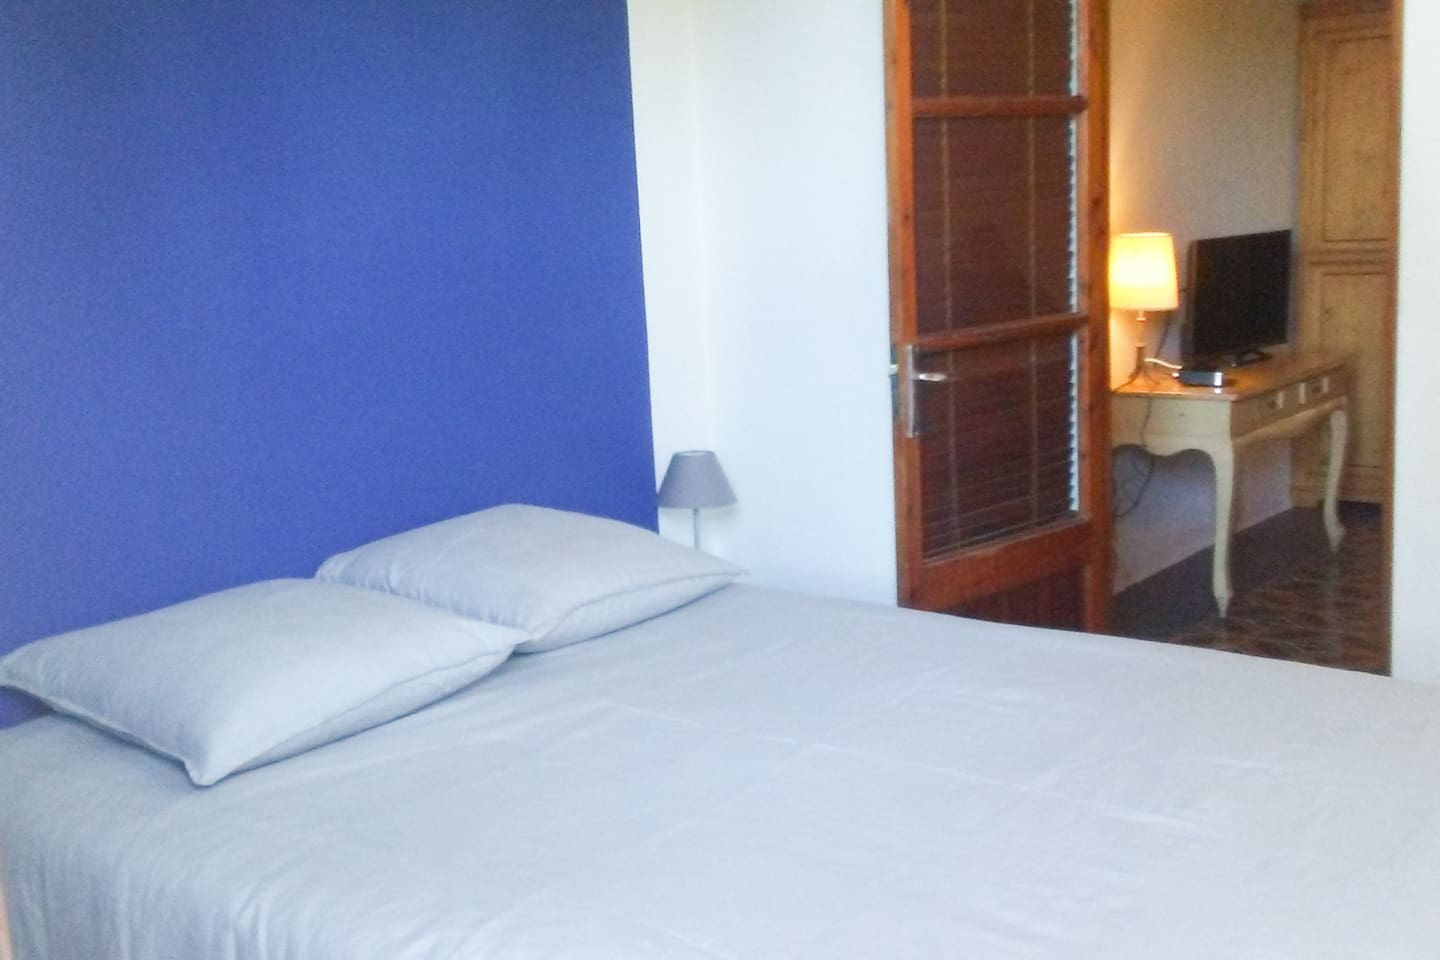 Bedroom with double bed, ensuite bathroom and lounge.